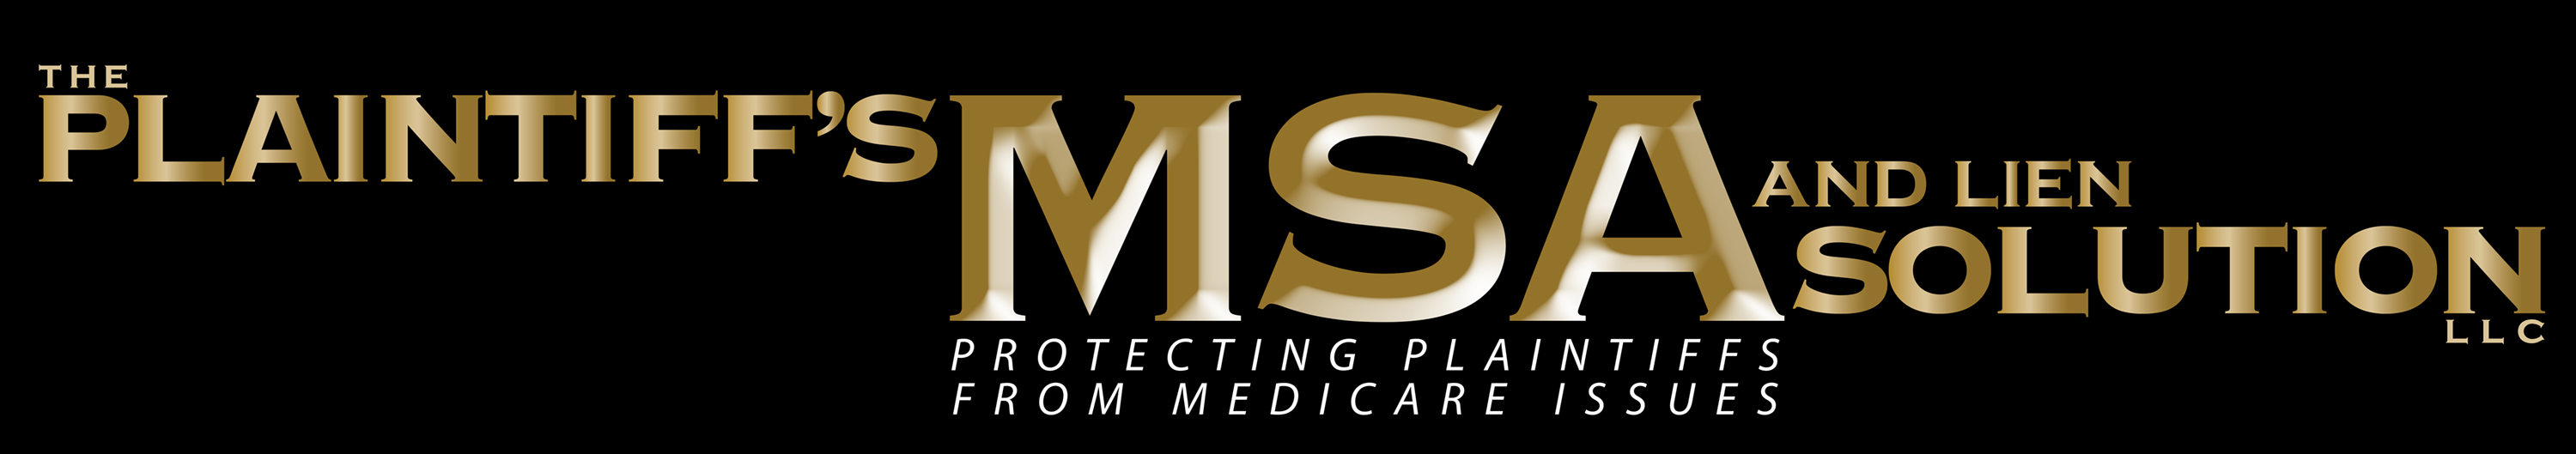 Plaintiffs MSA and Lien Solution - Medicare BS & Trial Lawyers